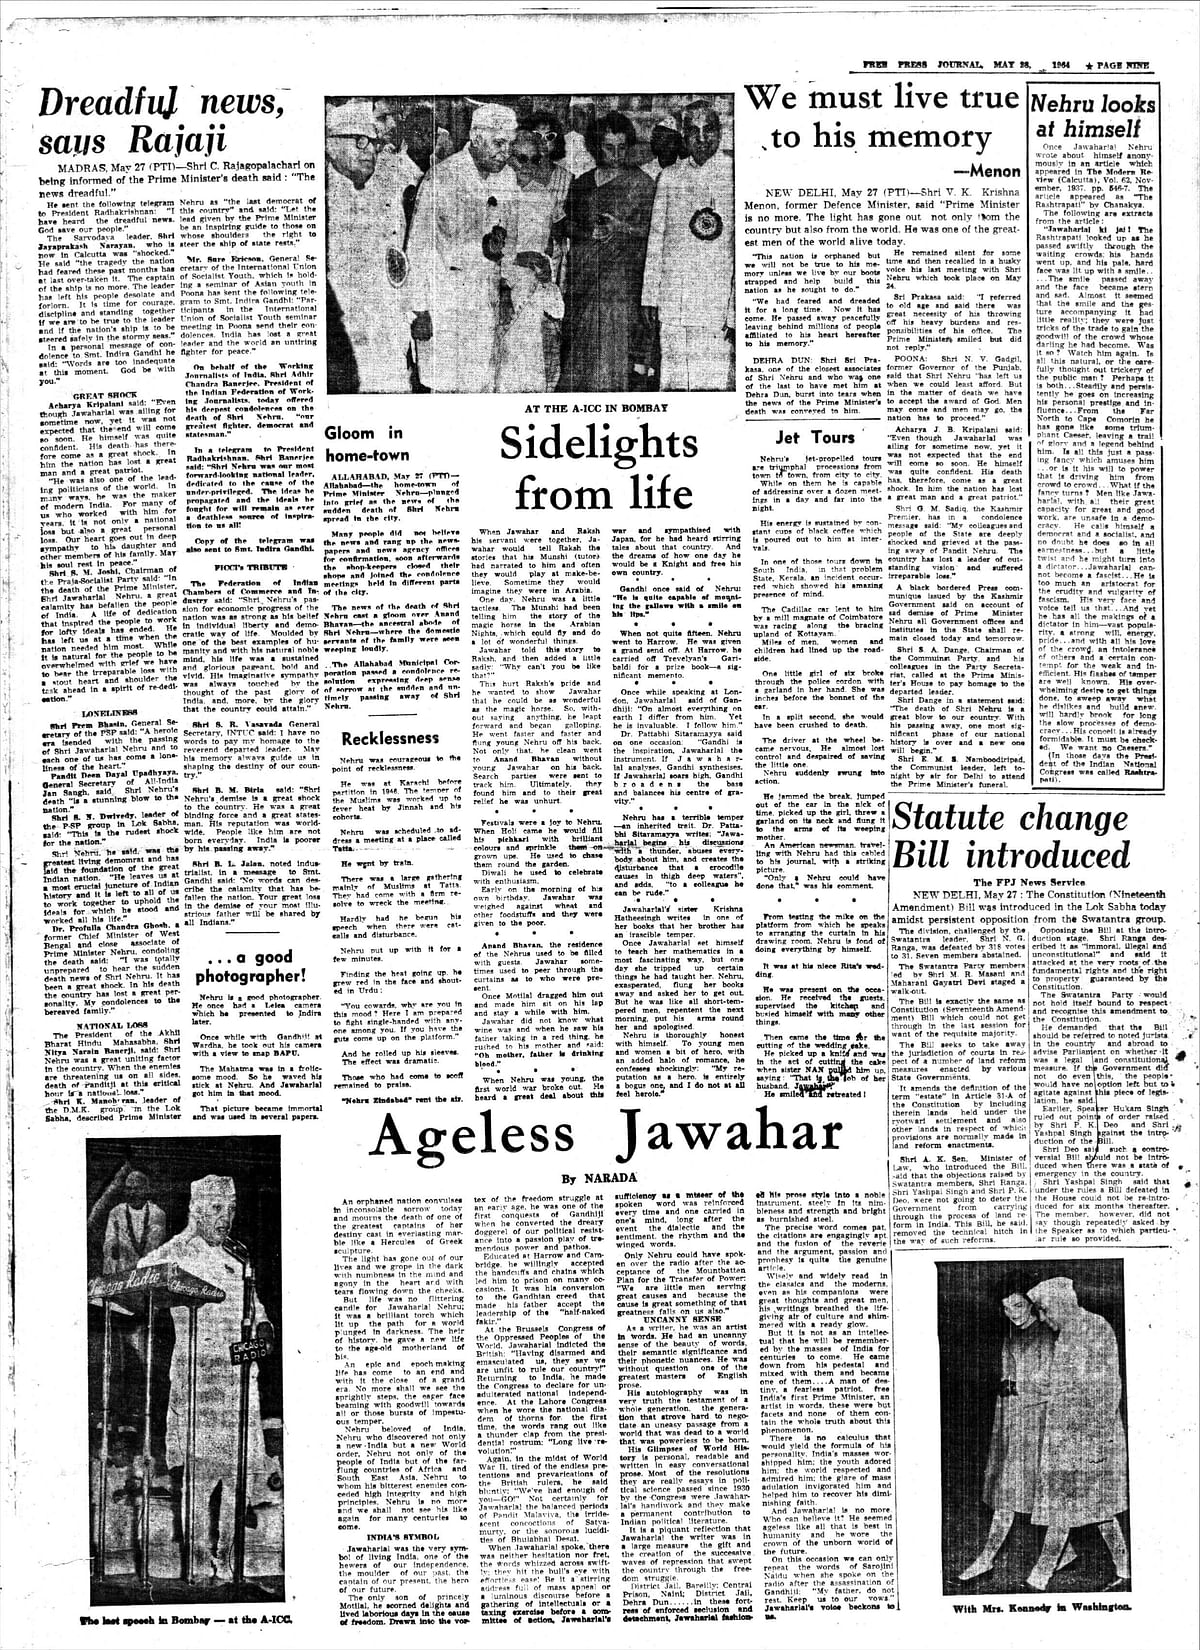 From the FPJ Archives: Nehru epoch comes to an end, world grieves for India's lost leader